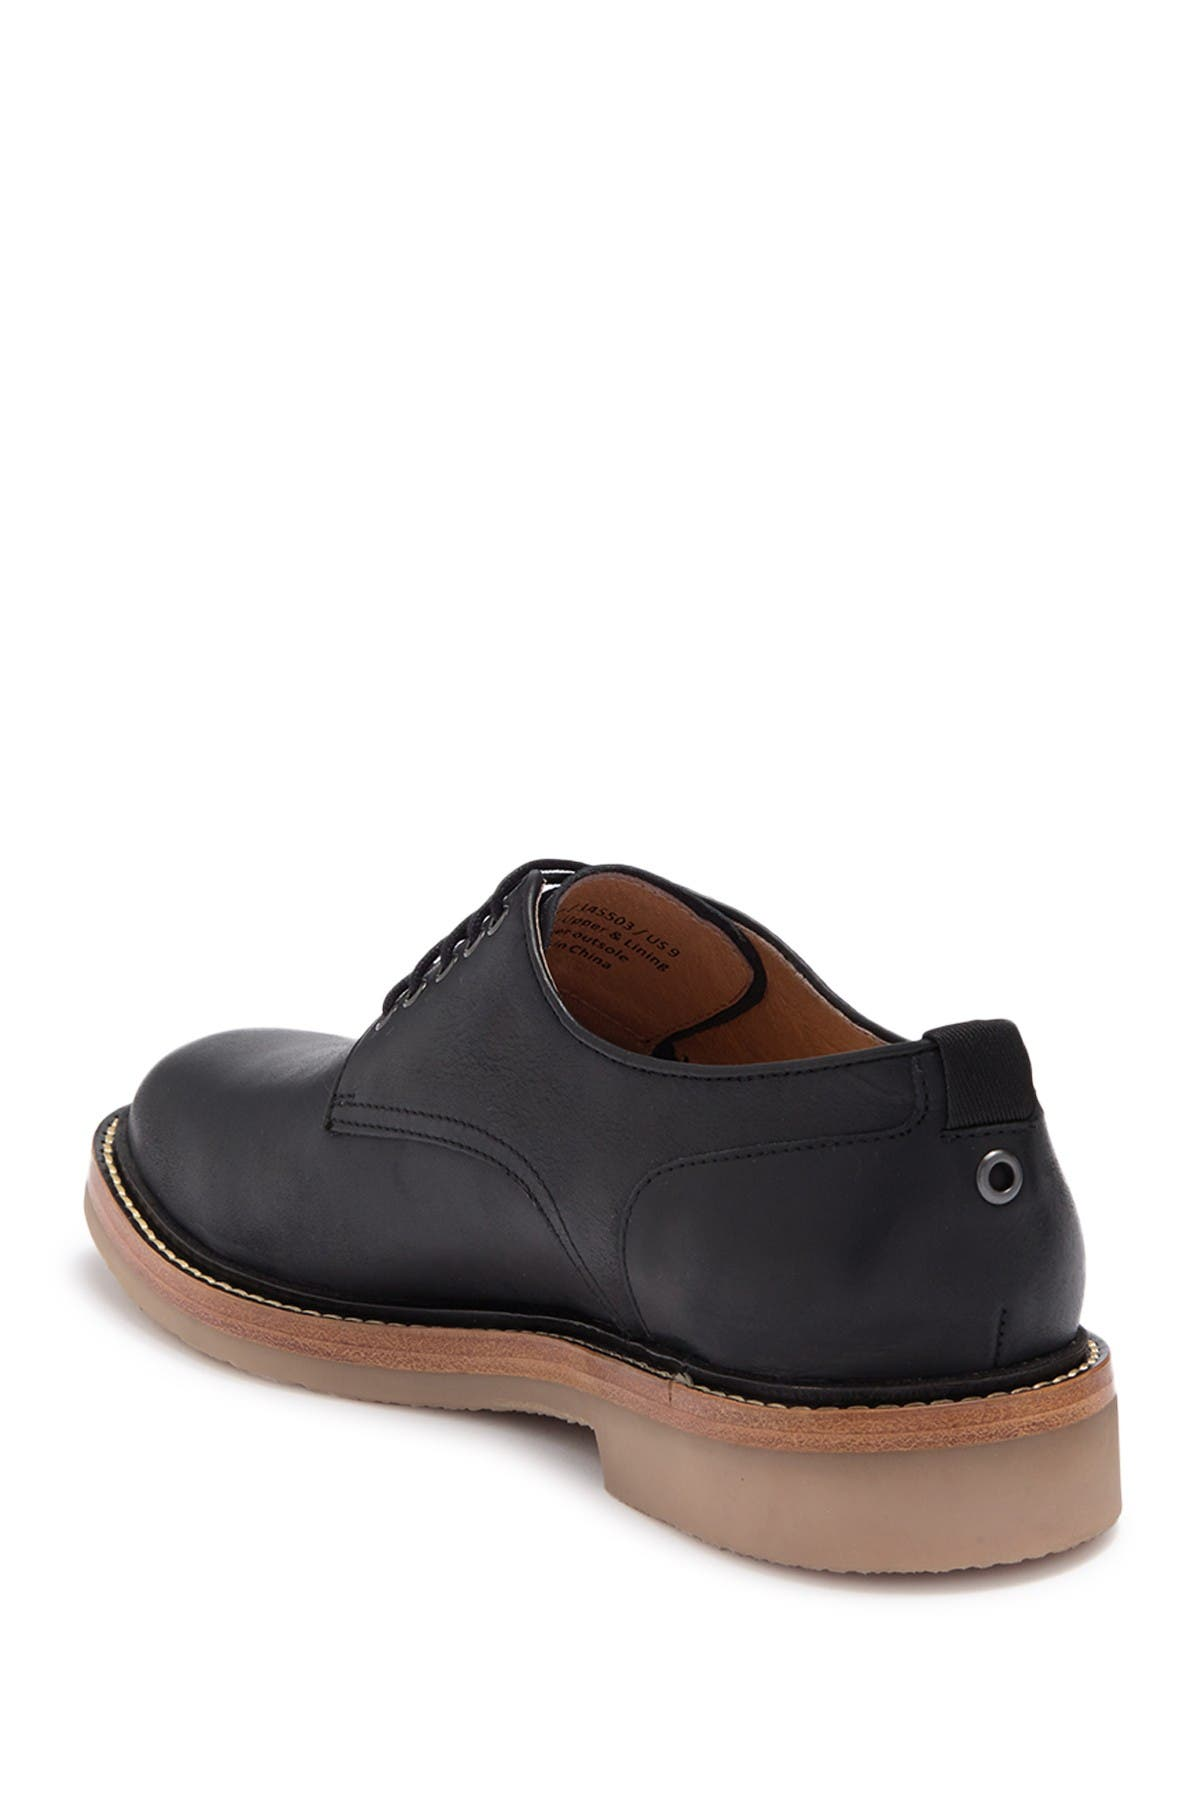 Image of Warfield & Grand Foster Leather Derby